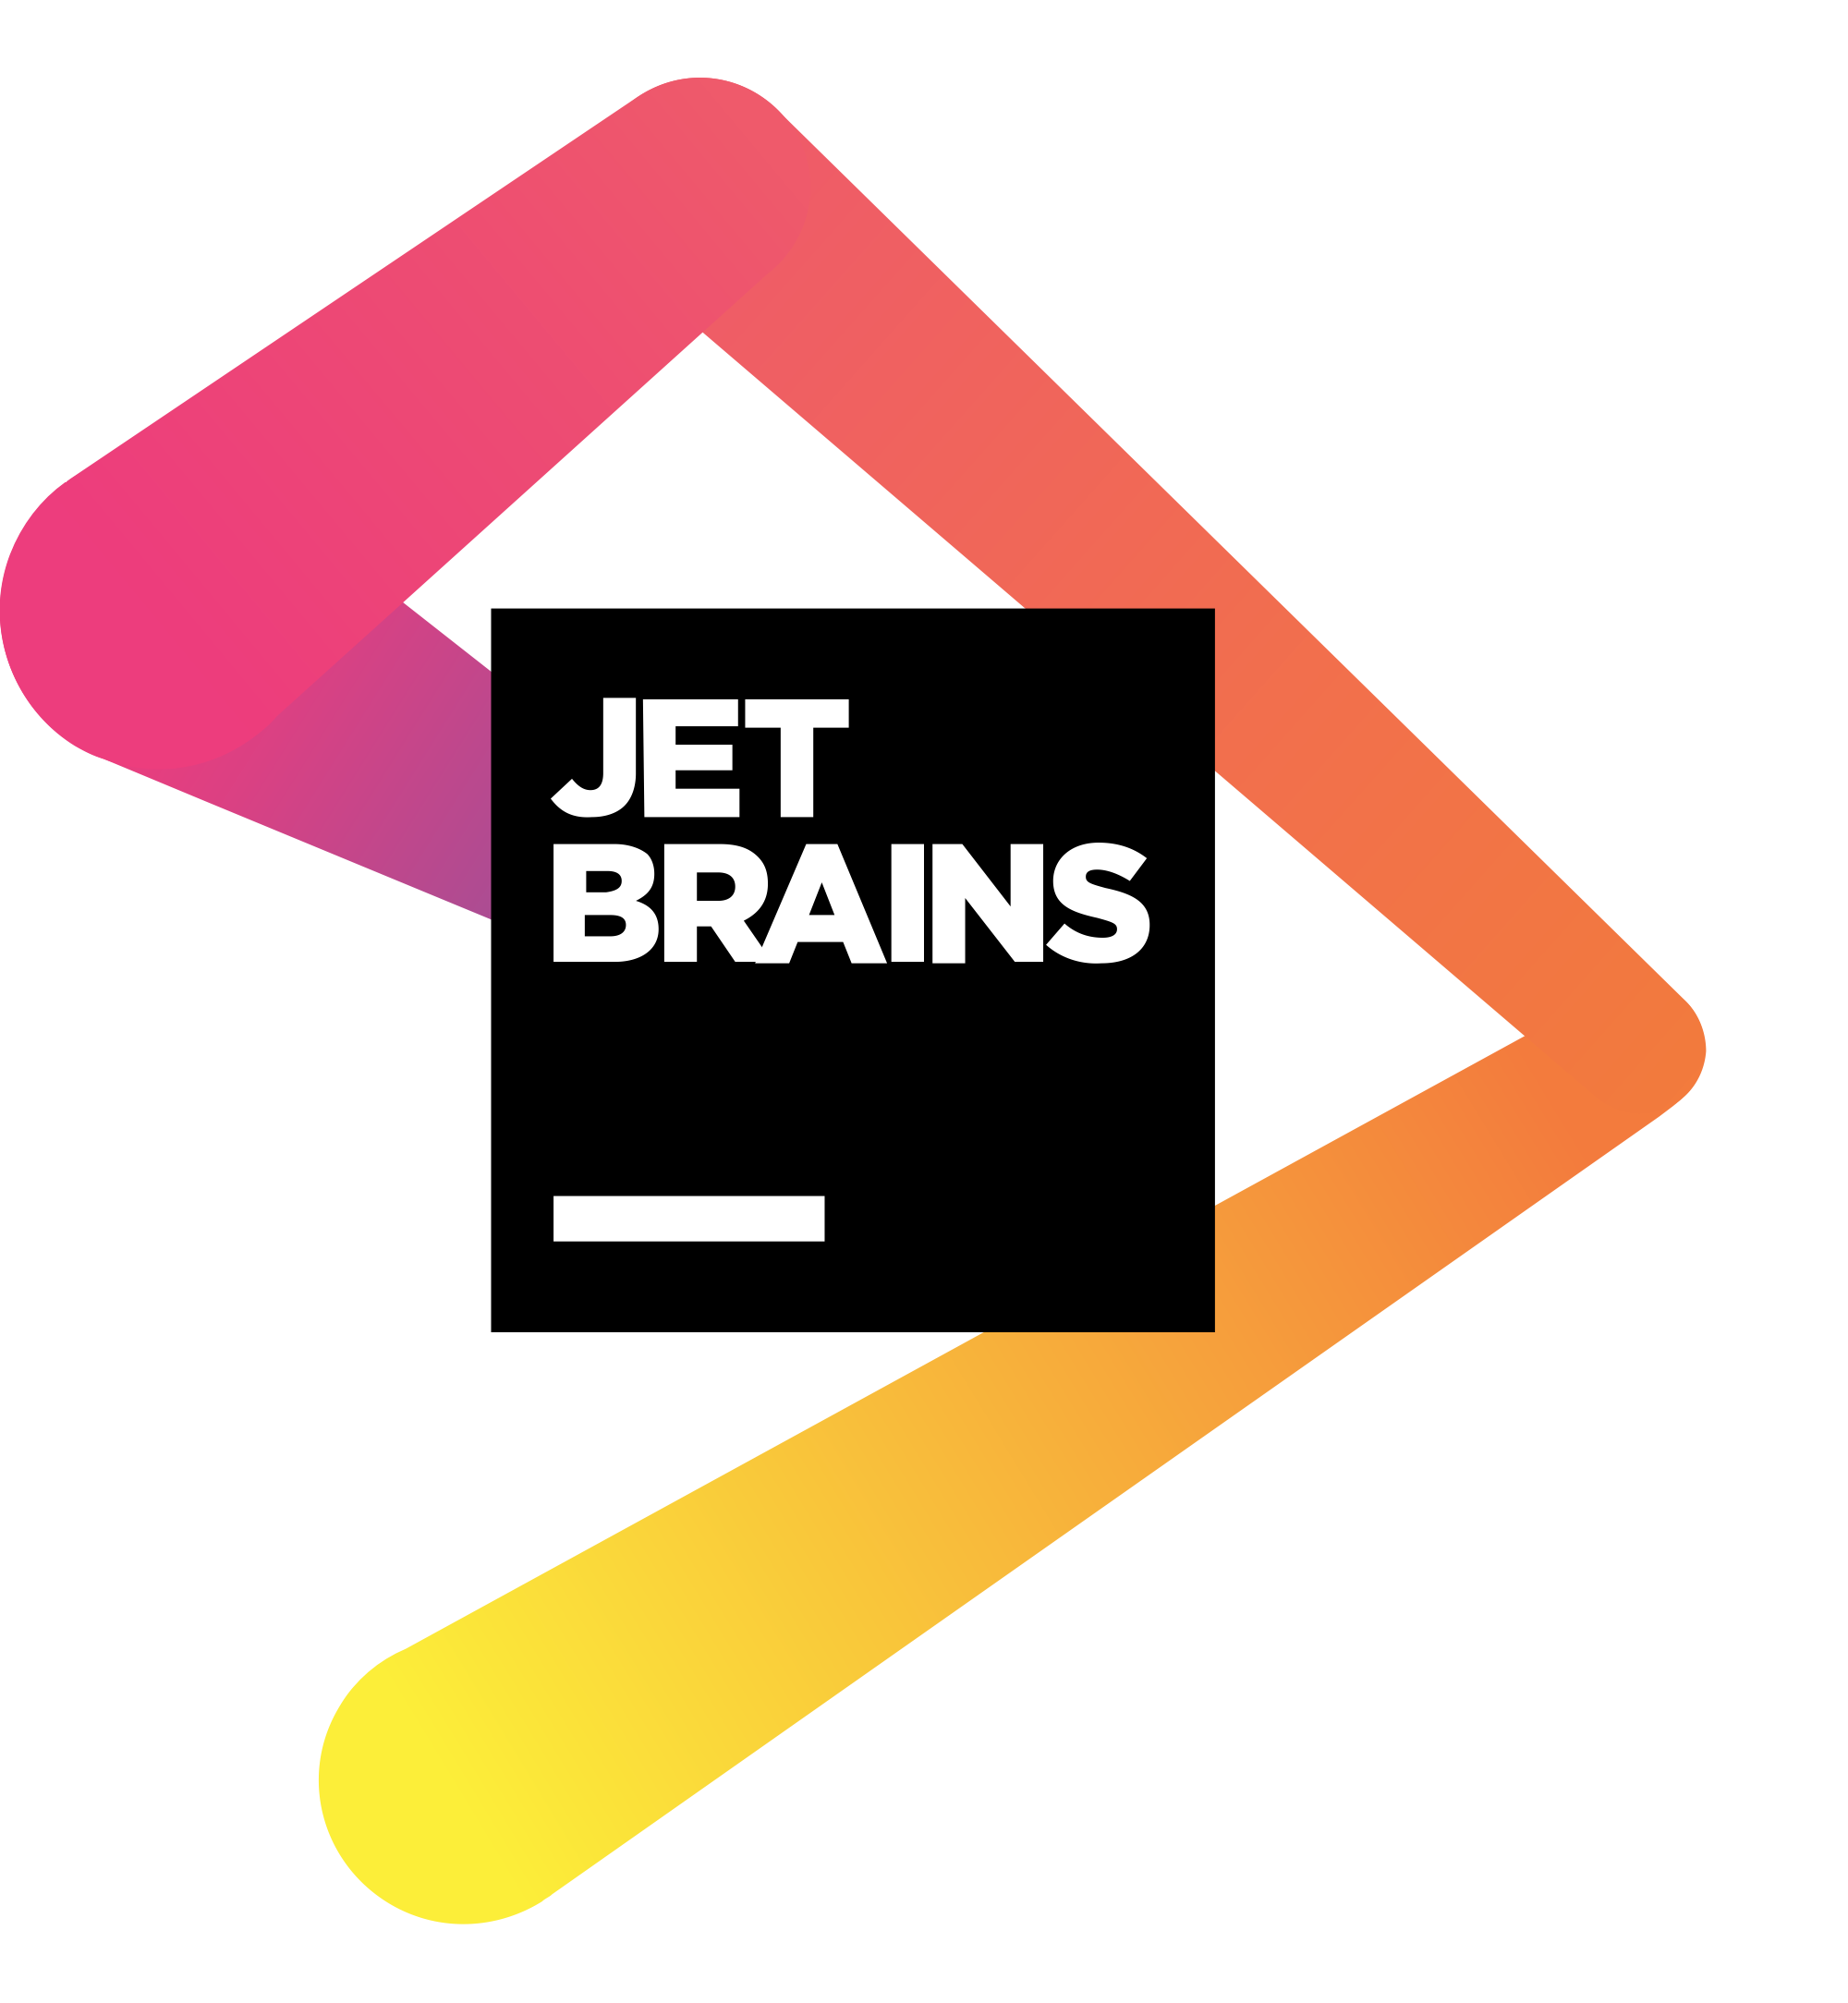 Supported by JetBrains